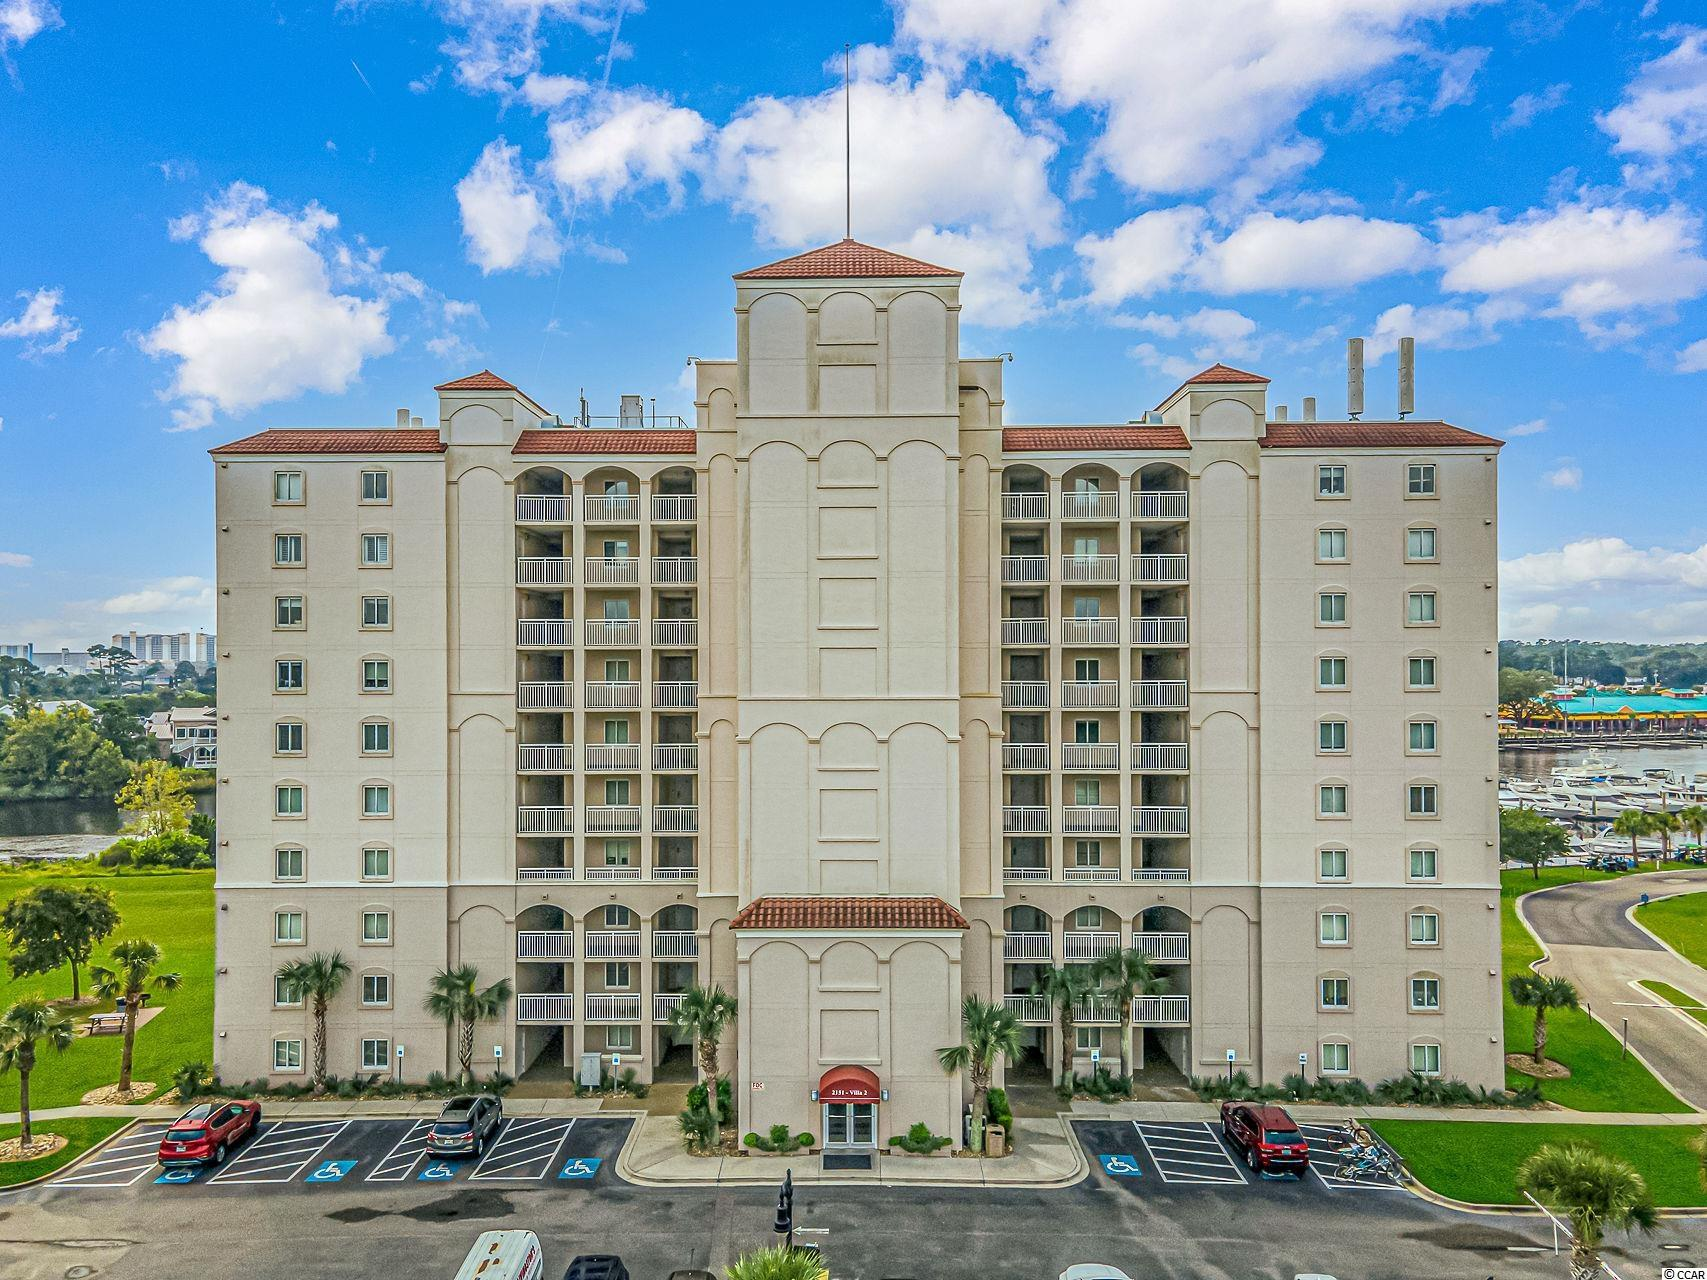 """Welcome to the best of North Myrtle Beach living. This beautiful unit located on the 8th floor of the Yacht Clubs Villas Number 2, has everything you would need plus breathtaking views. This unit is located directly on the waterway overlooking the marina and great tourist attraction of barefoot landing. Boasting 4 bedrooms and all with their own private bathrooms, this is truly privacy and luxury living at it's best. When arriving you will notice that there are three doors, the main entrance is through door """"A"""" leading you into a large open foyer that looks straight through the unit over the water. The other two exterior doors belong to the front two spare bedrooms, each equipped with private bathrooms with tile flooring and tub shower combo, ability to fit queen sized beds, carpeting, ceiling fans, spacious closets and yes their very own entrance and exits from the unit. Walking further into the unit you are meant with a a large kitchen featuring tile flooring, all white appliances that will convey, white cabinetry with solid surface, dark countertops, a breakfast bar, and plenty of storage. The dining area straight ahead, that can easily fit a 6 plus person table, is open to the rest of the huge living area, perfect for entertaining. The main living area is carpeting, with a ceiling fan and double sliding door access to a balcony overlooking the waterway/marina. Off the main living are the two largest bedrooms and bathrooms. To the right, this master bedroom has carpeting, ability to fit a king sized bed, a ceiling fan, access to its own balcony, large closet and full master bath with stand up shower, a garden tub, double sinks, tile flooring and a second entrance/exit leading to a hallway. This hallway has many storage closets and houses the stackable washer and dryer unit. To the left of the living area is the second master, with carpeting, a ceiling fan, the ability to fit a king sized bed, its own private balcony as well, and a master bath with similar feature"""